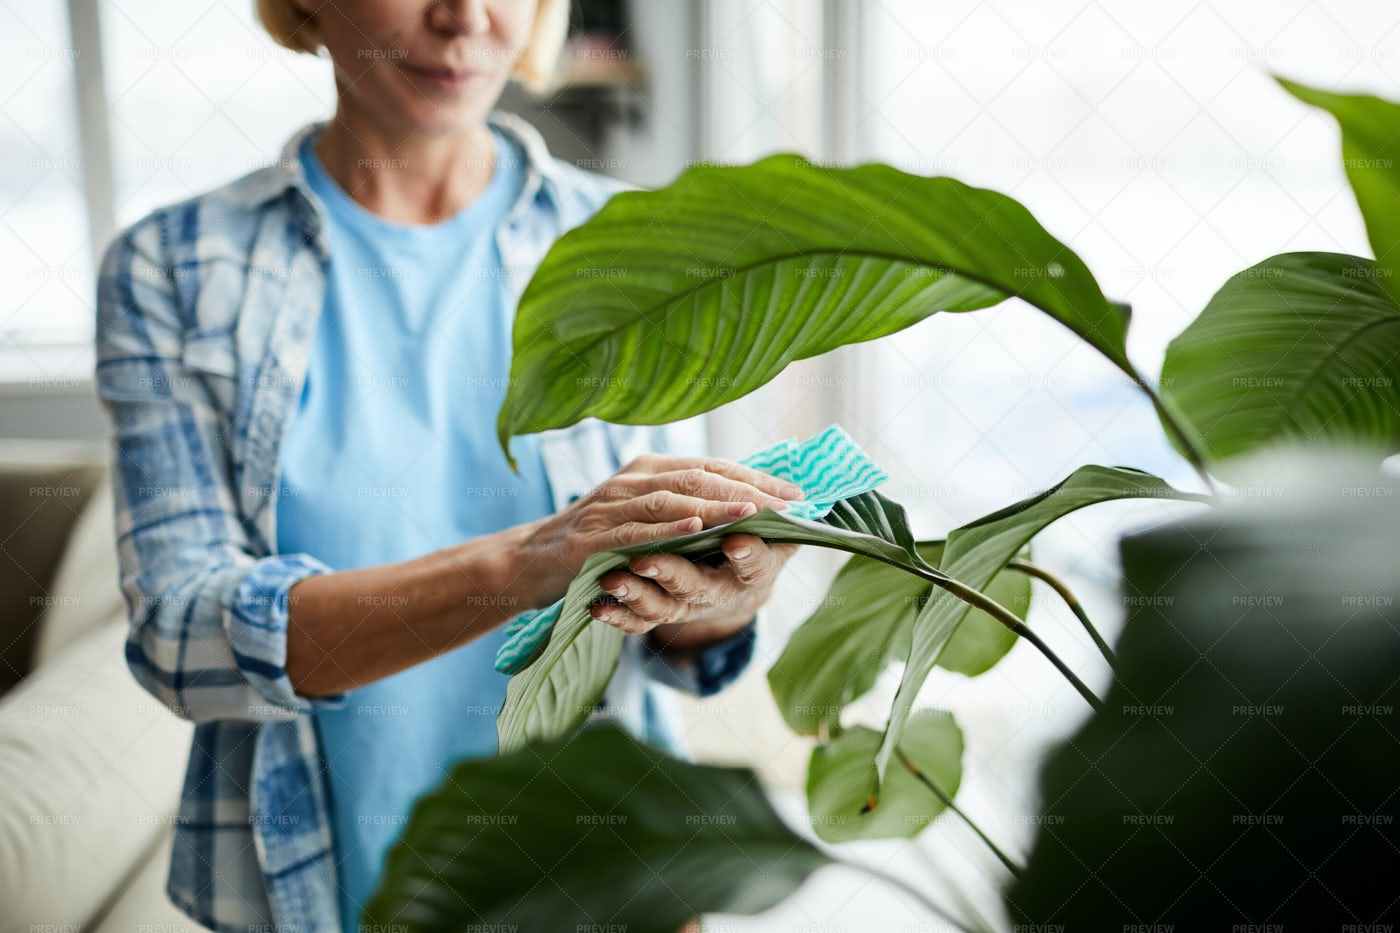 Cleaning Leaves Of Houseplant: Stock Photos